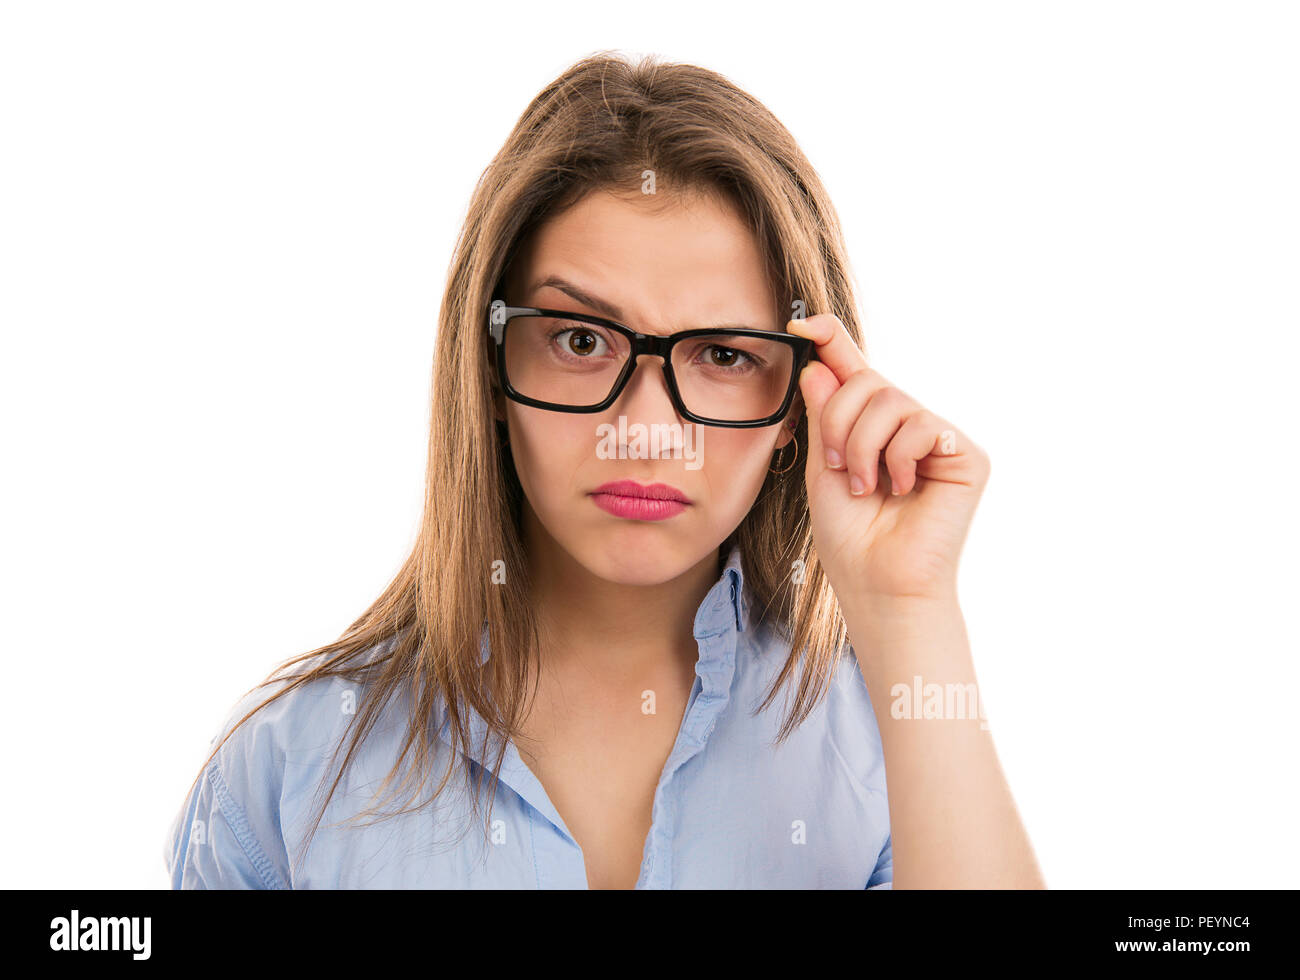 Young modern woman looking puzzled while touching eyeglasses in doubts isolated on white background - Stock Image